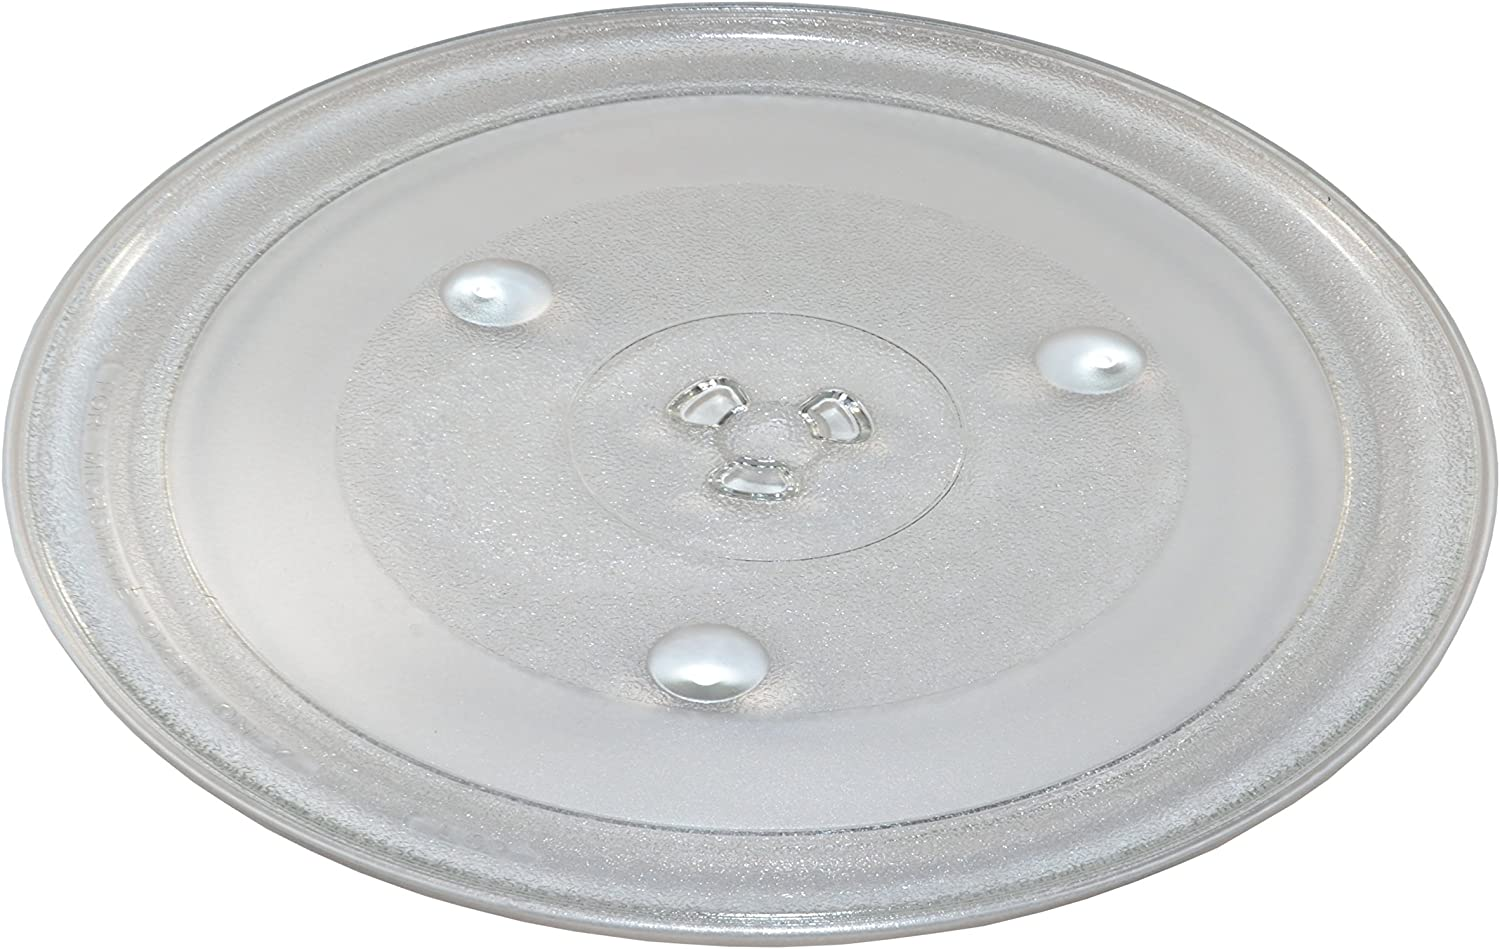 HQRP 12-3/8 inch Glass Turntable Tray compatible with Hamilton Beach P100N30 P100N30AL P100N30ALS3B HBP100N30ALS3 GA1000AP30P3 EM031MZC-X1 Microwave ...